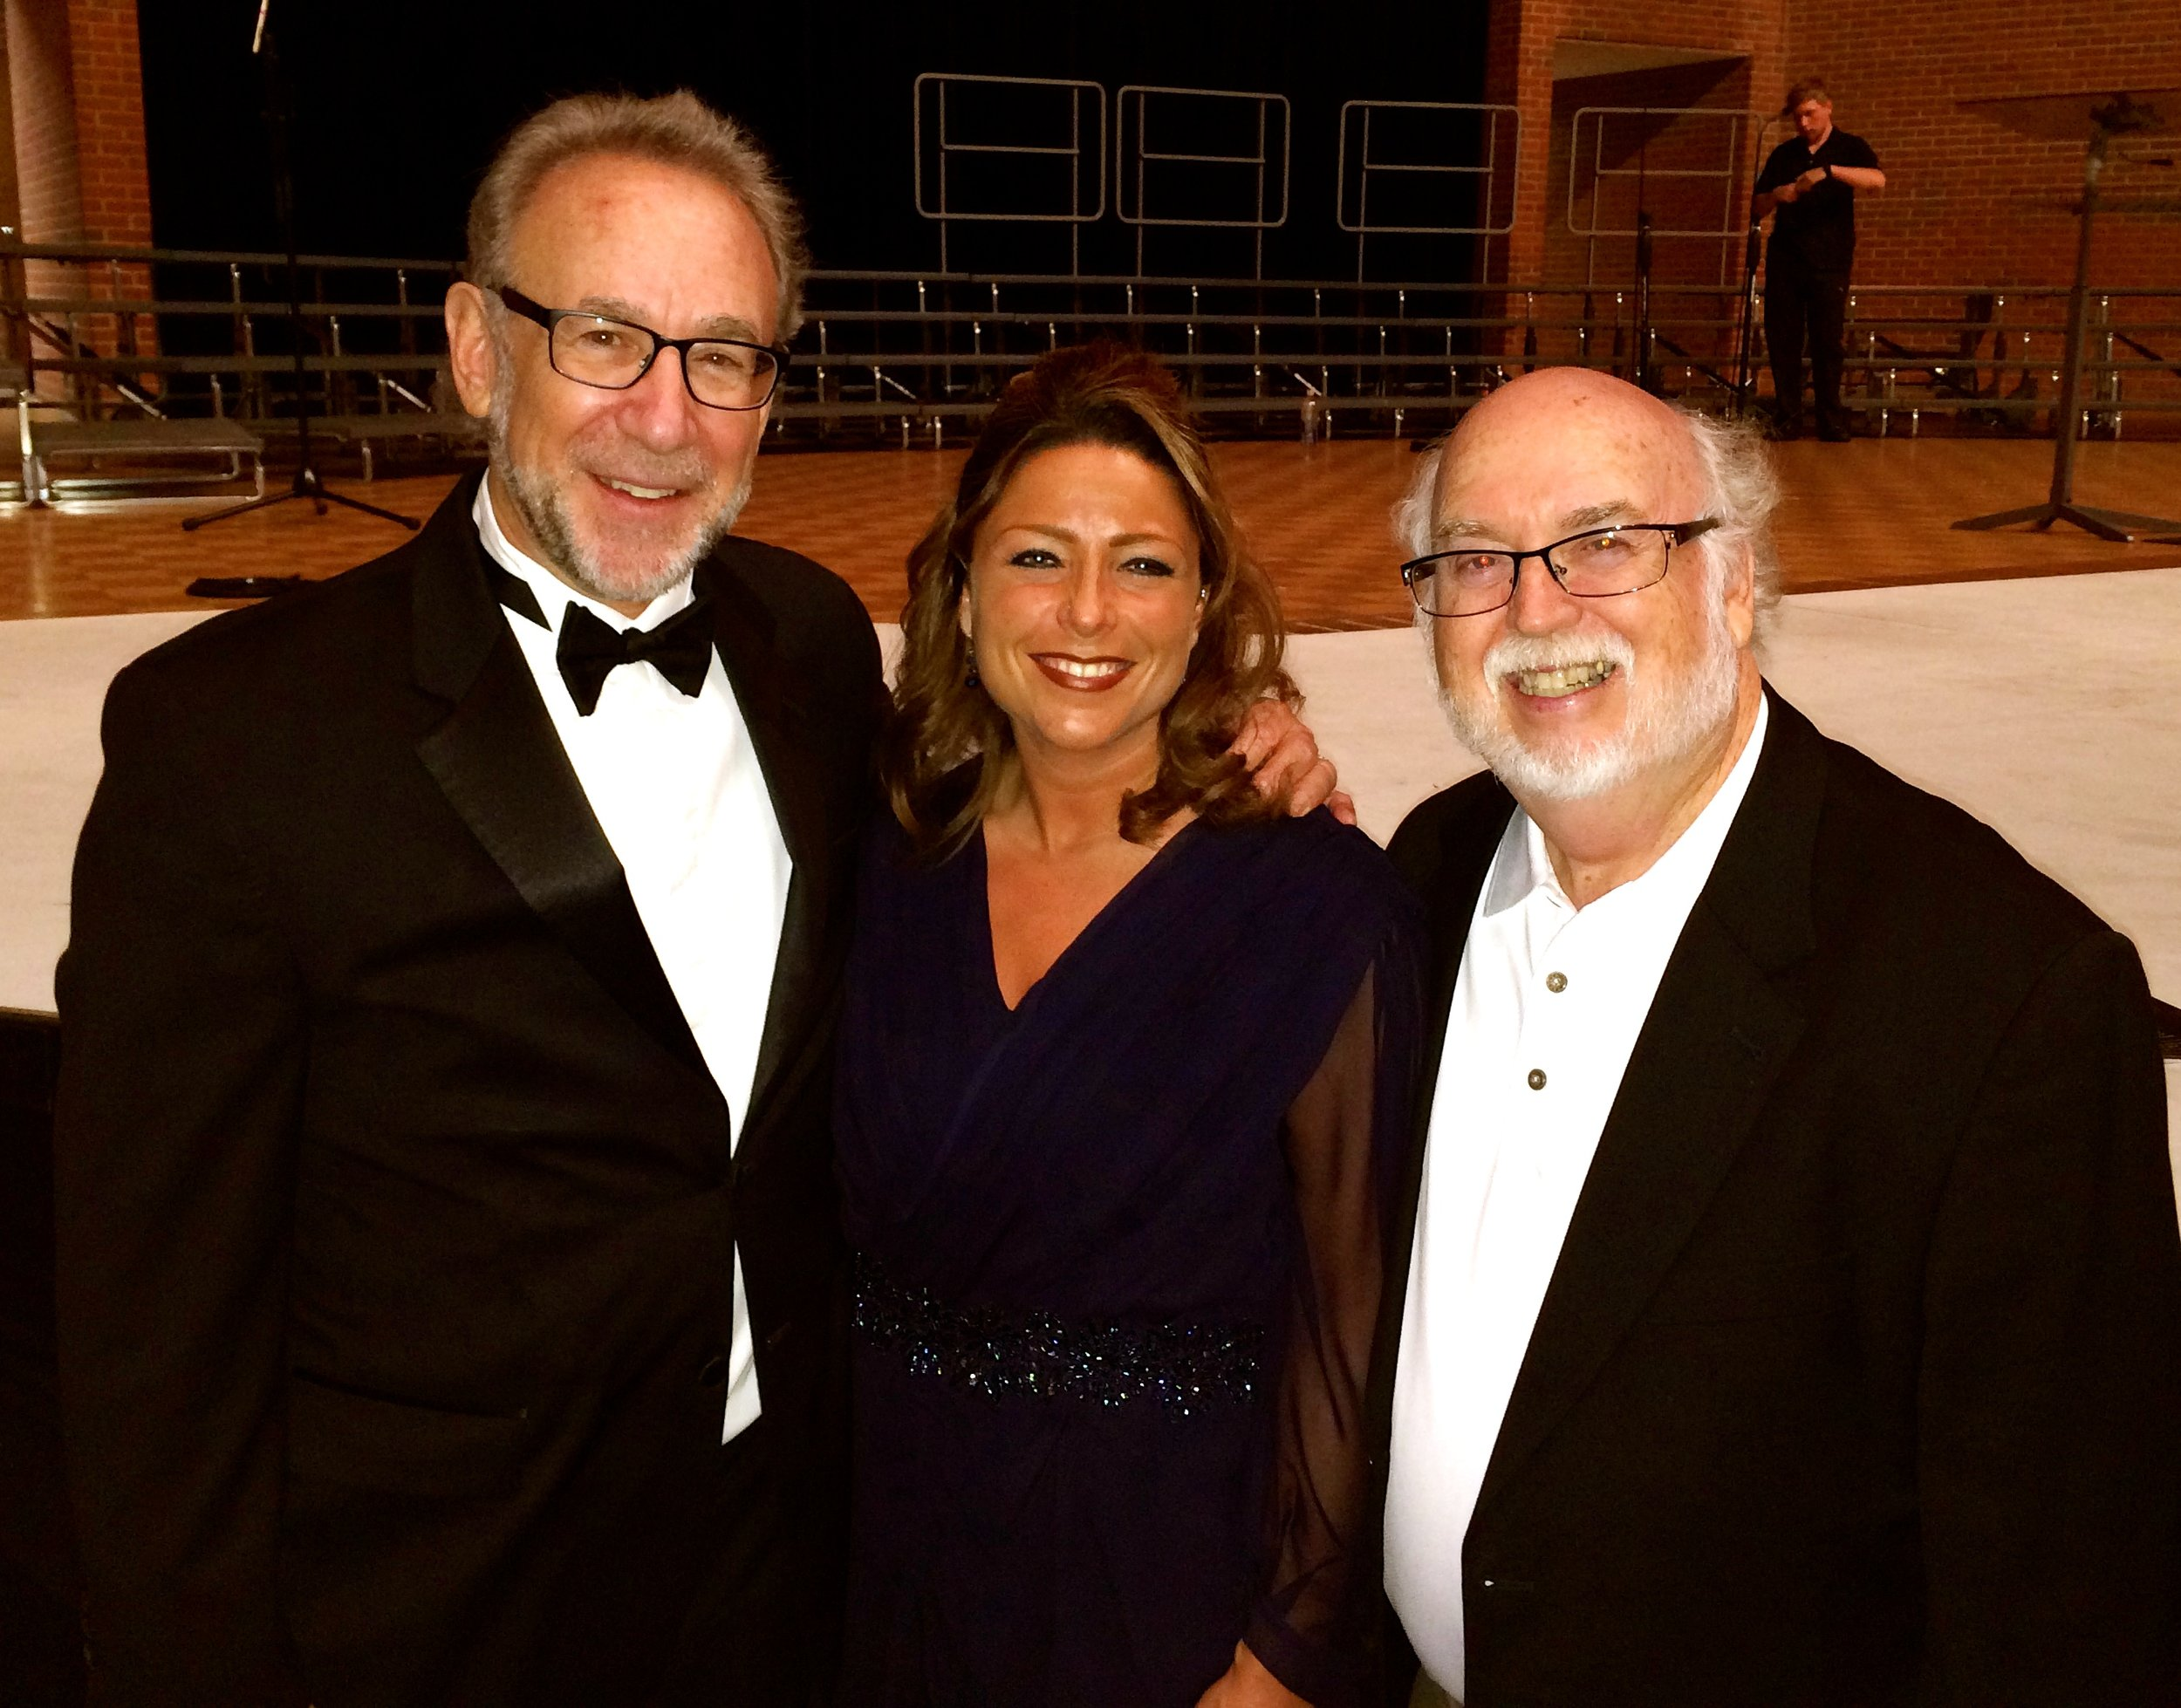 My two principal conducting teachers Bob Bernhardt and Dr. David Holsinger